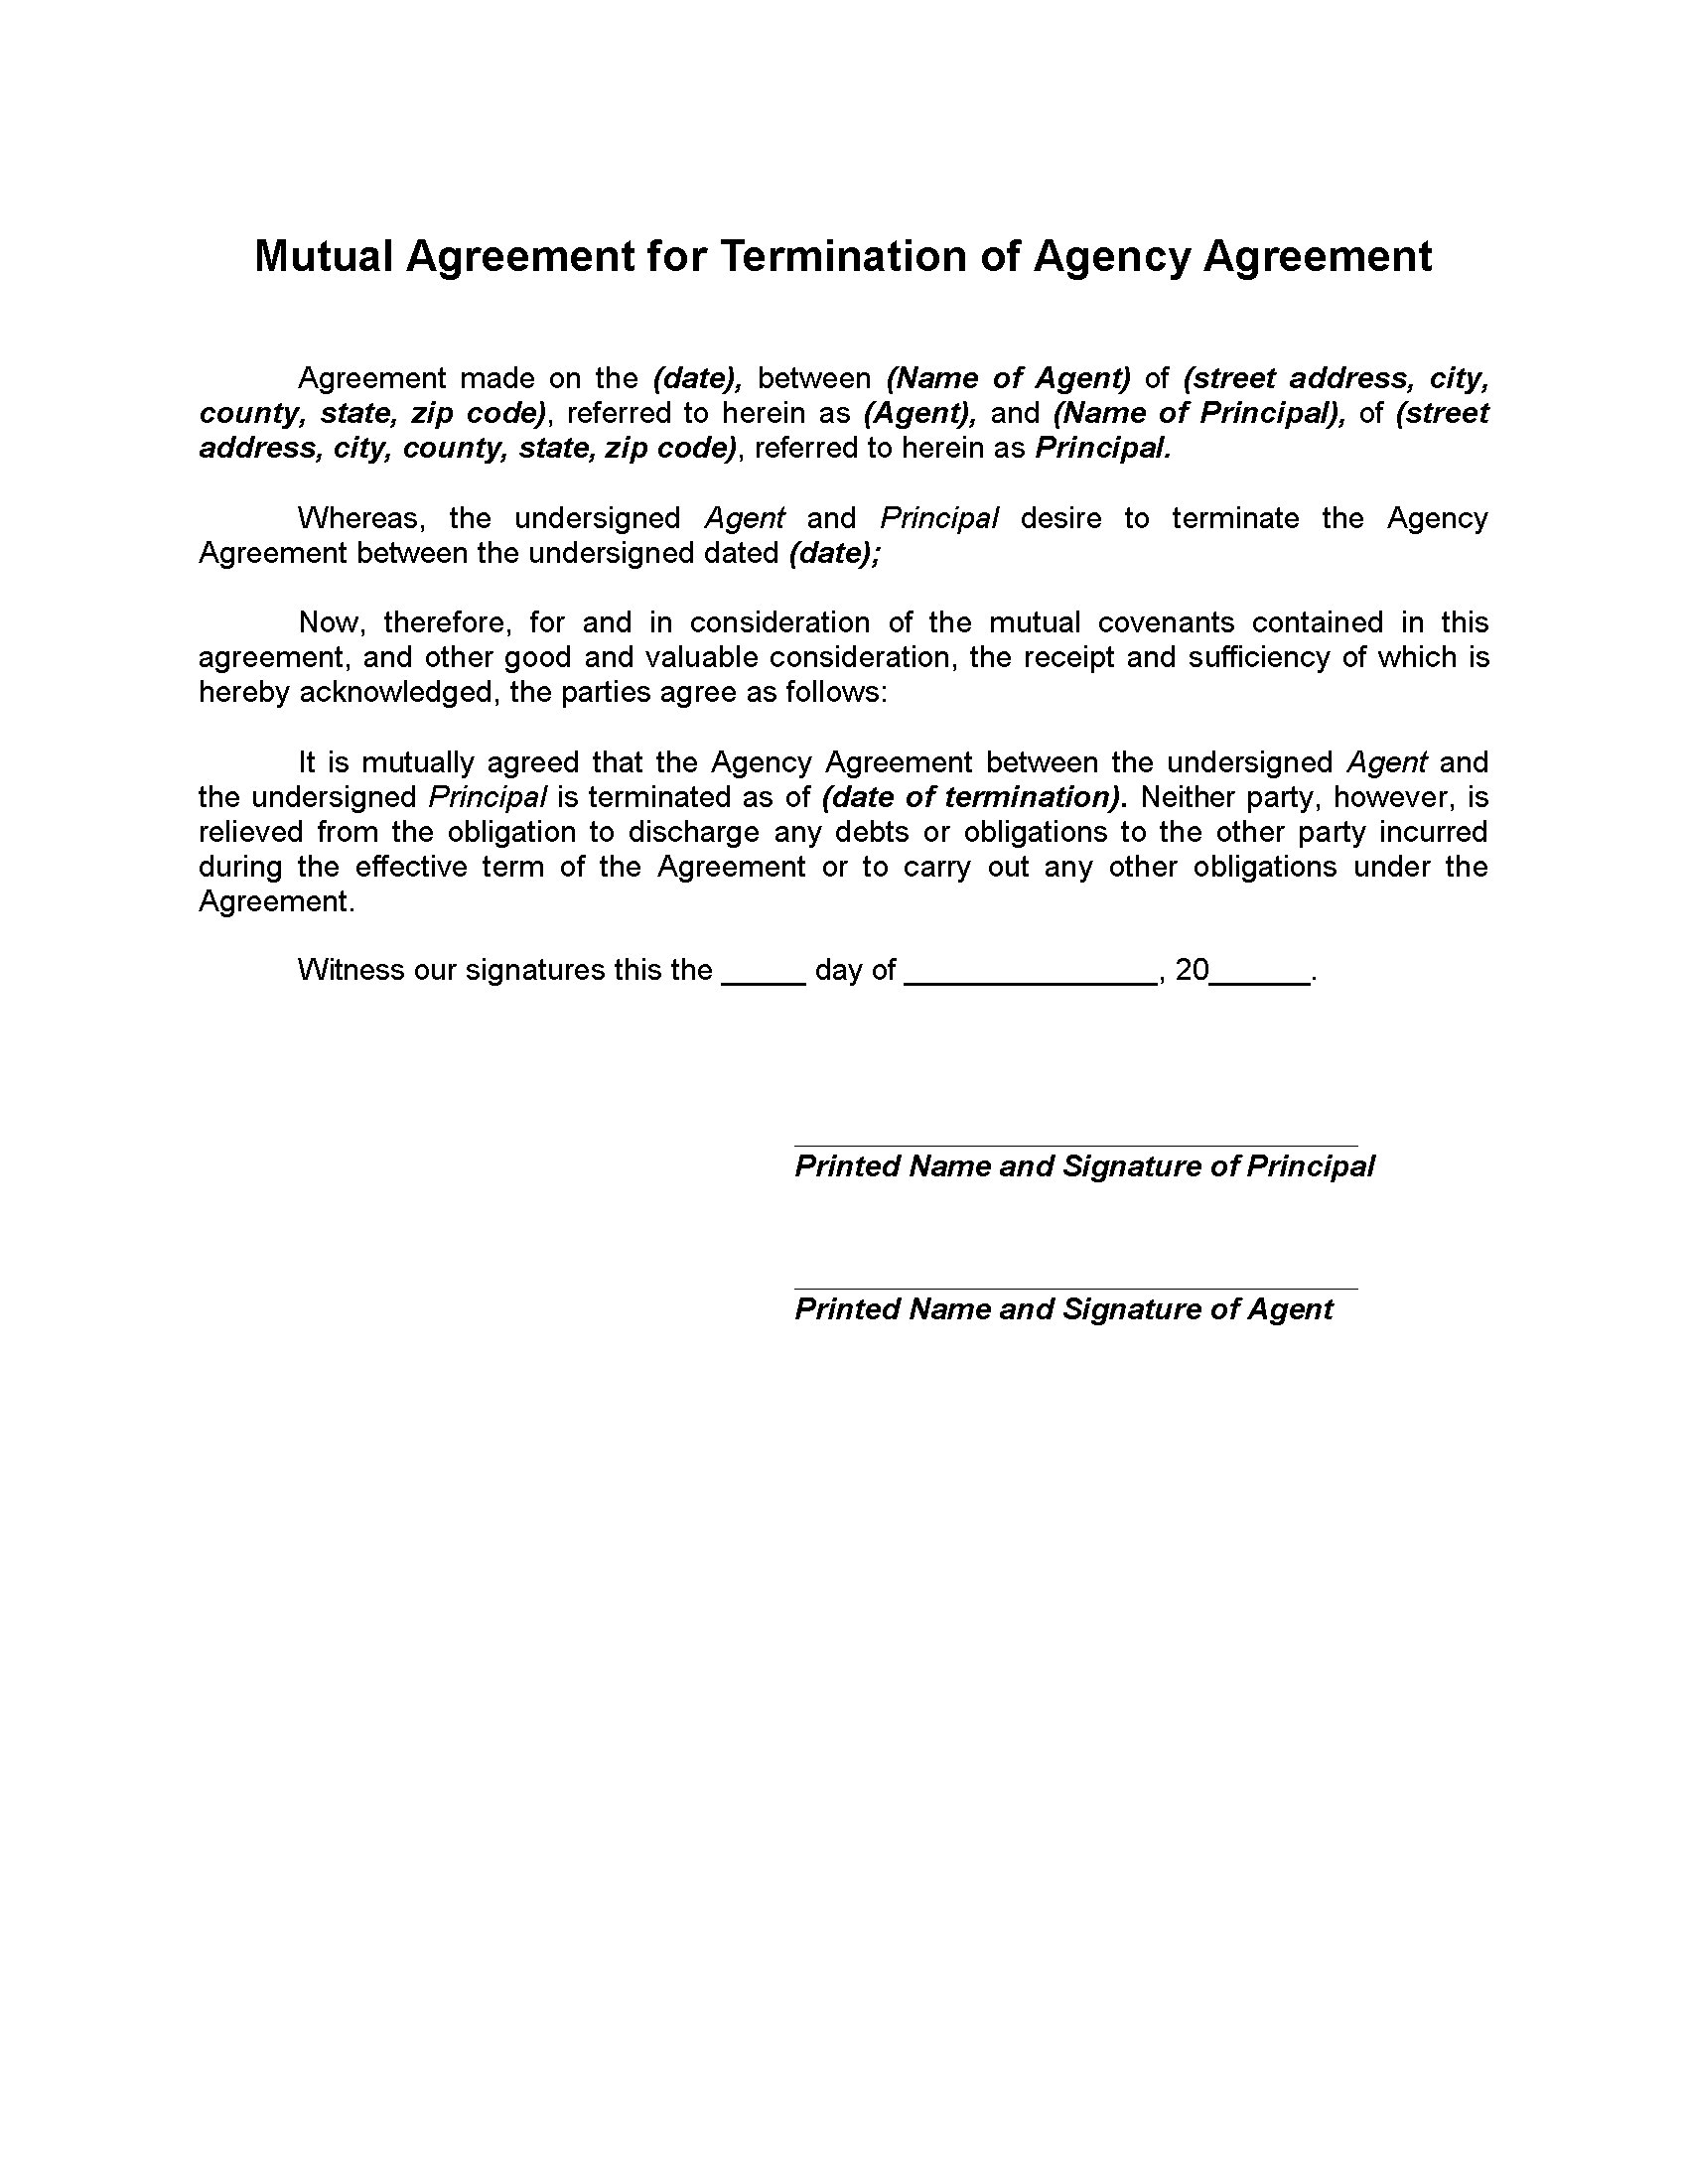 Mutual Termination Of Agency Agreement